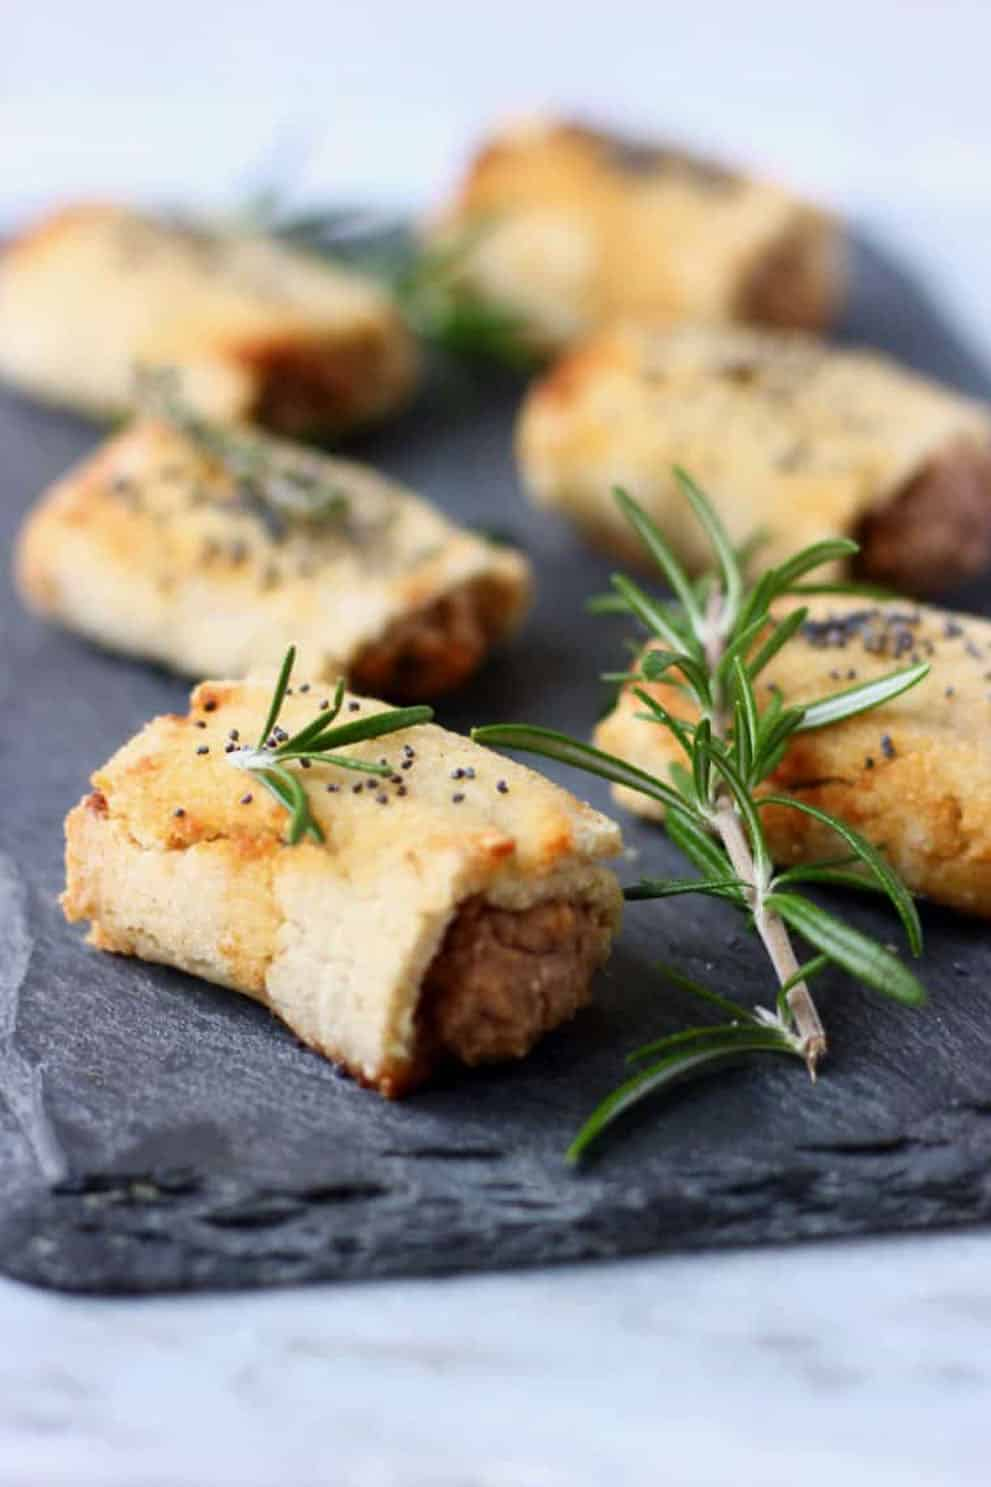 GLUTEN FREE VEGAN SAUSAGE ROLLS by Rhian's Recipes: These delicious and easy veganappetizers are what you'll need for your party. The most incredible, healthy and inexpensive party food perfect to please a crowd!